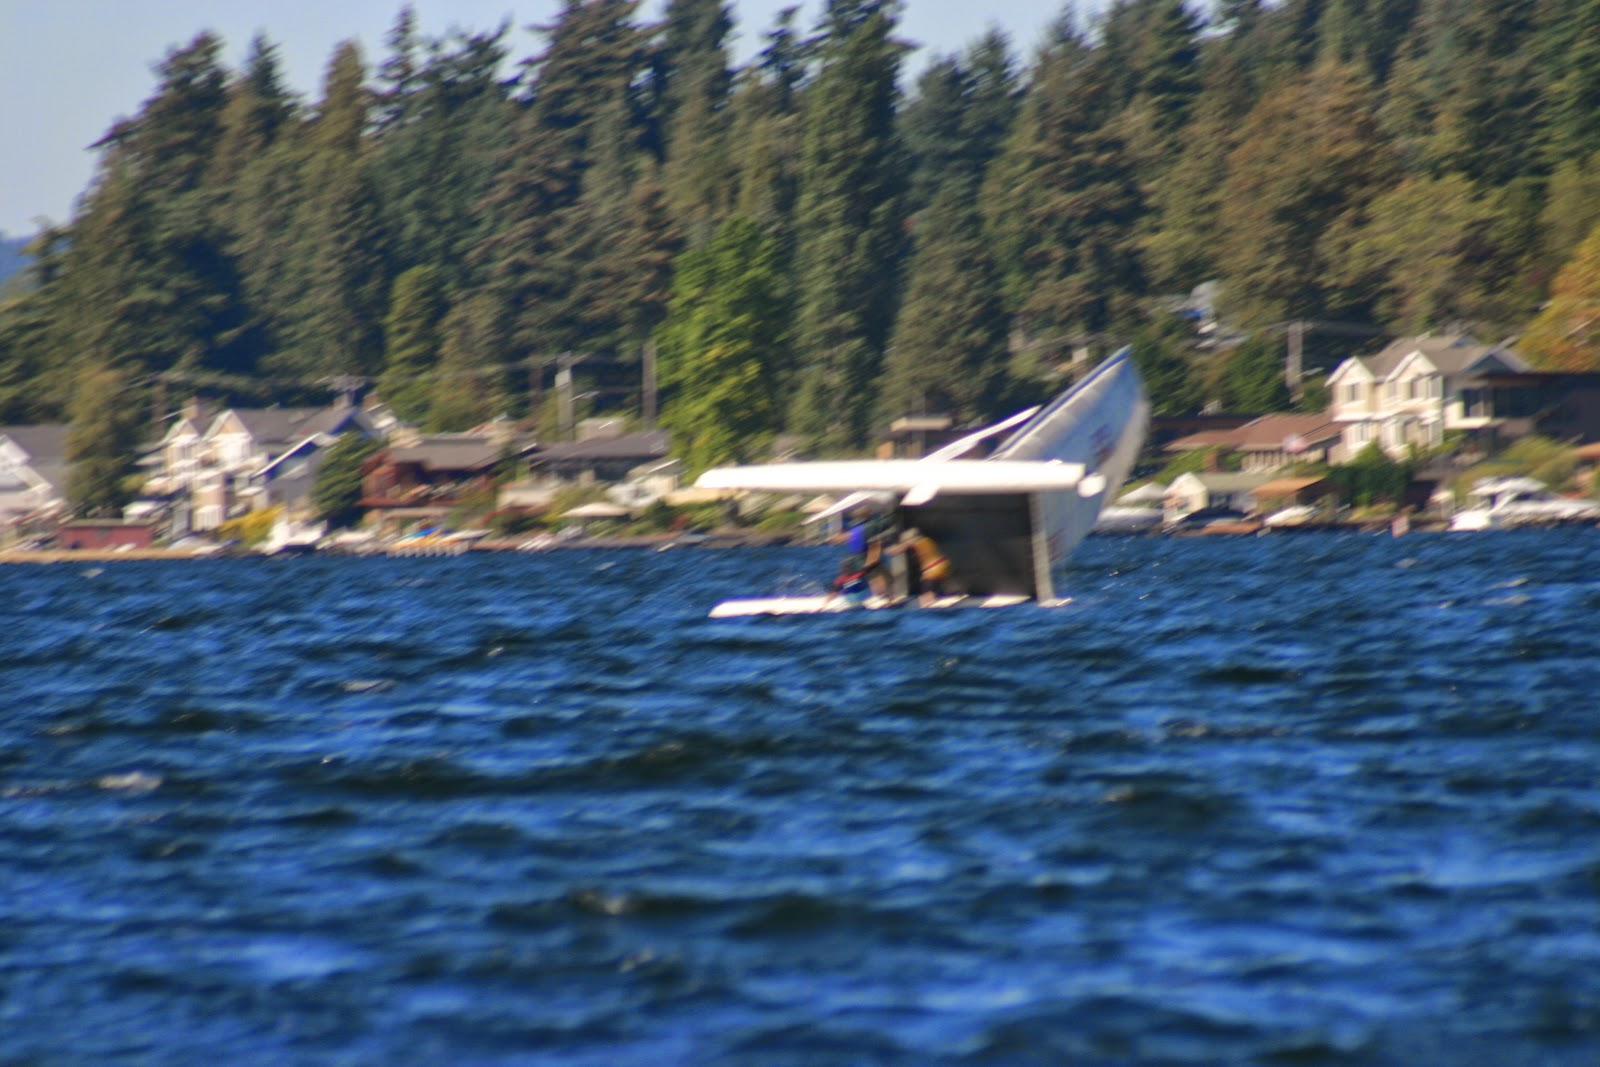 Righting a capsized hobie cat 2